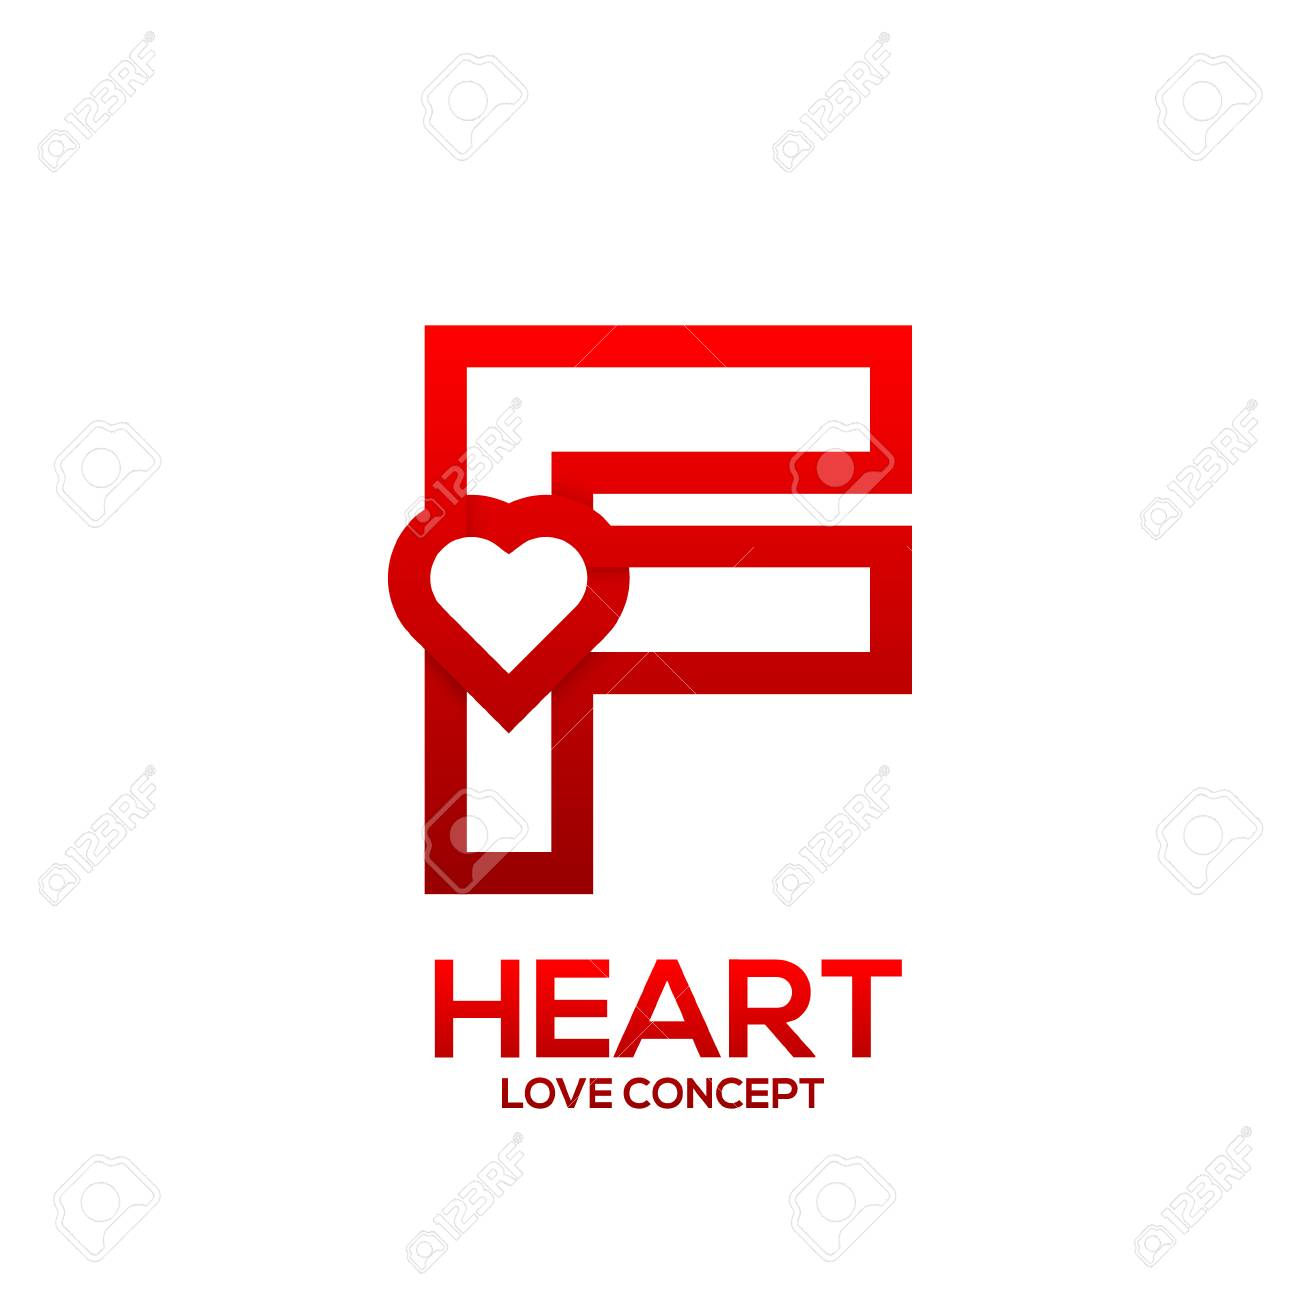 Letter f heart red color logovalentine day love concept logotype letter f heart red color logovalentine day love concept logotype stock vector 84132264 altavistaventures Choice Image